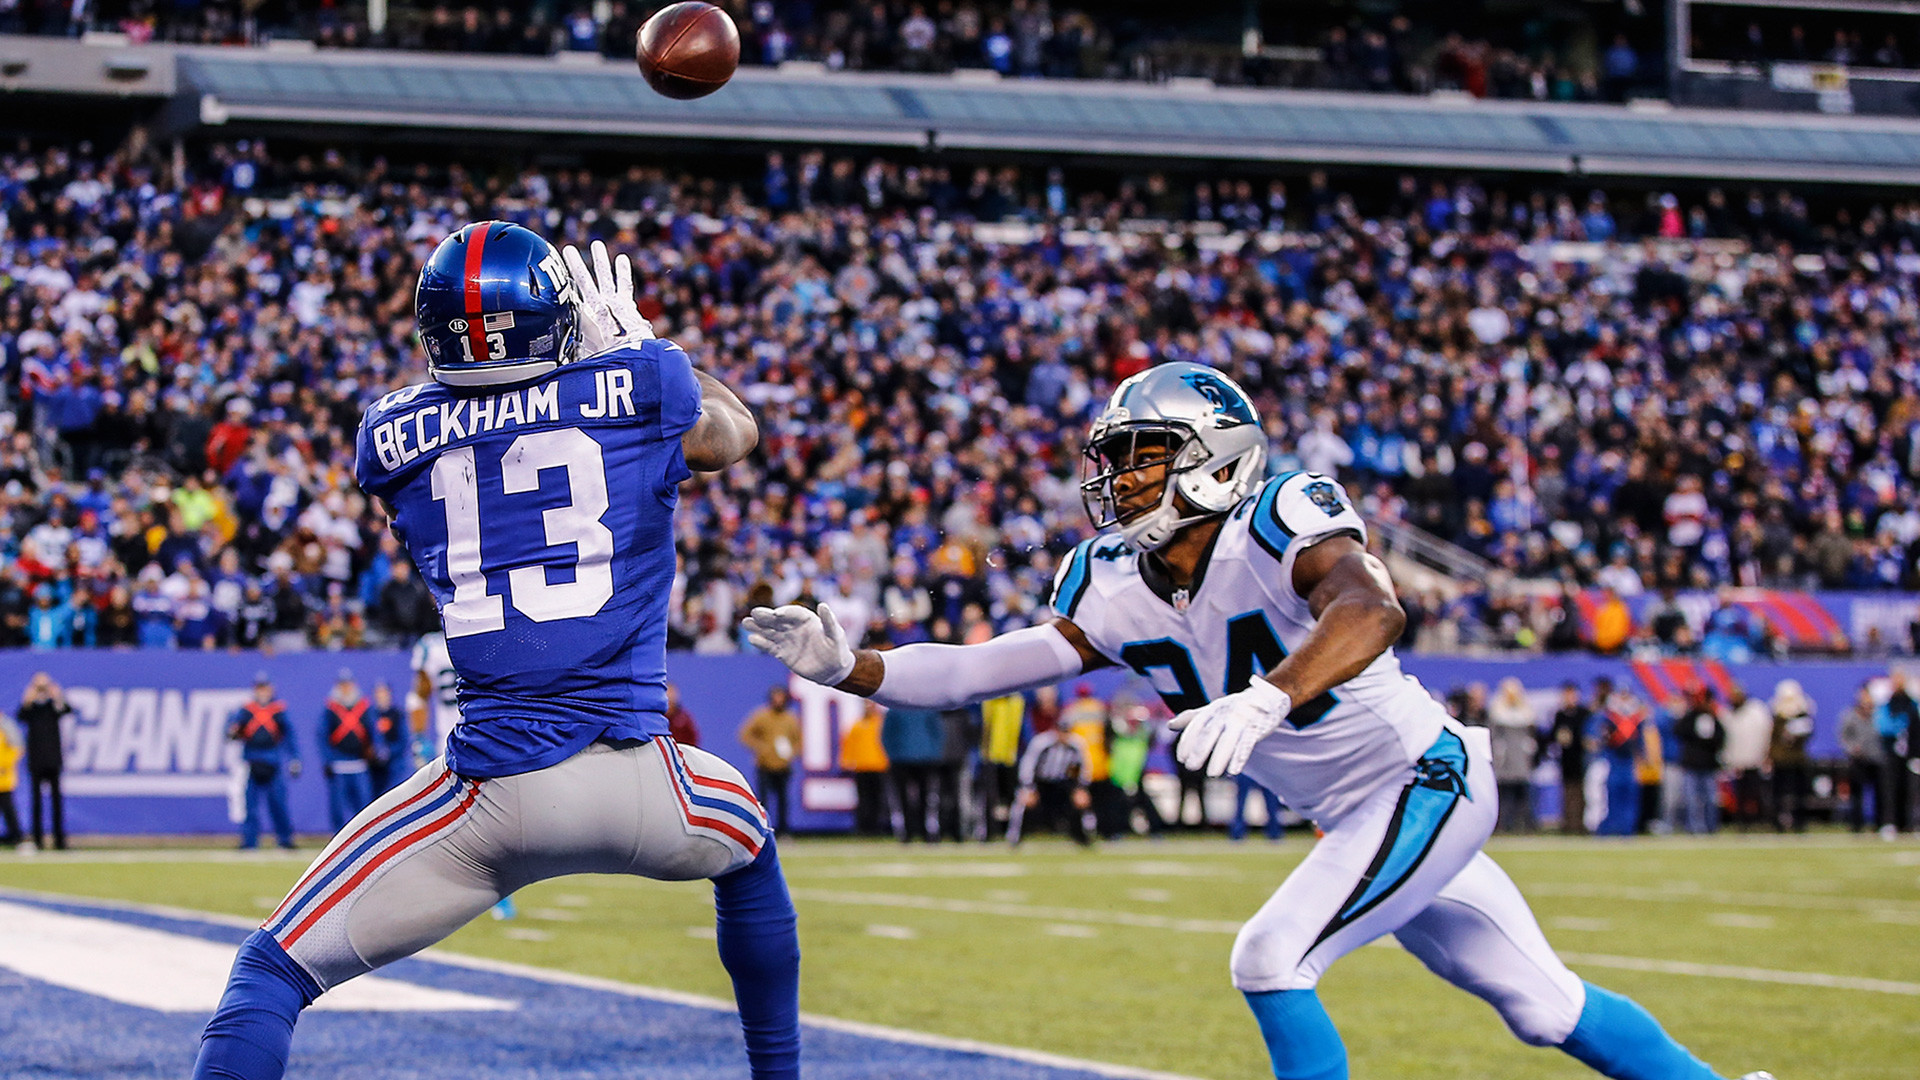 1920x1080 NFL pundits blast Odell Beckham Jr. for losing control in Giants loss | NFL  | Sporting News